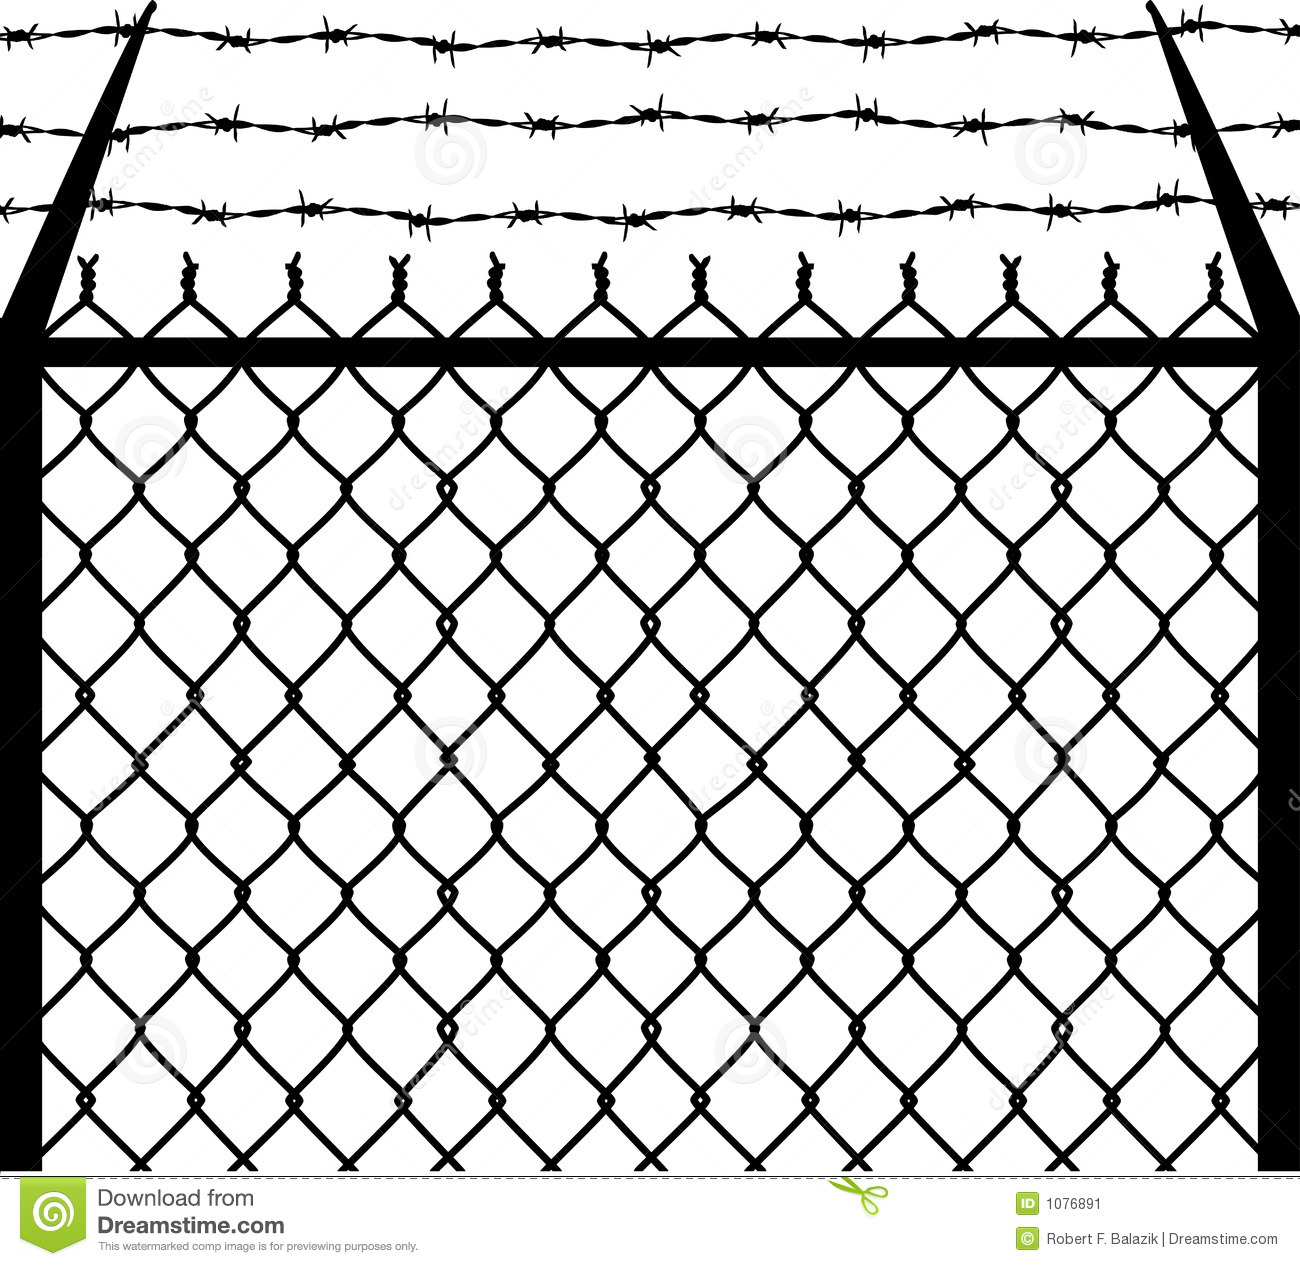 Fence drawing images reverse search